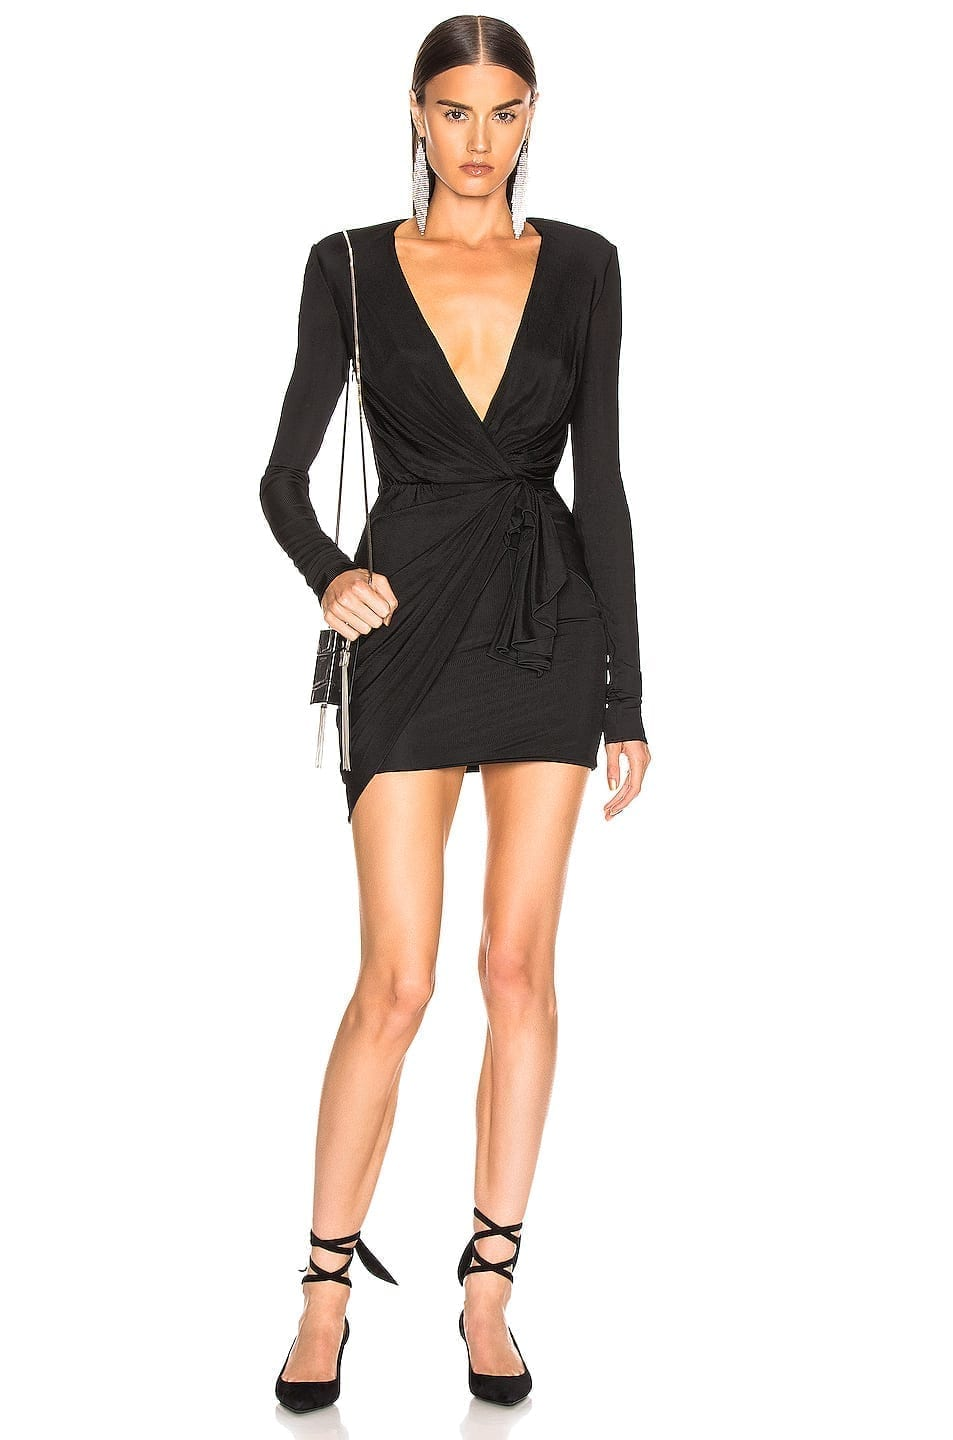 6eb6c72e23 ALEXANDRE VAUTHIER Plunging Wrap Black Dress - We Select Dresses